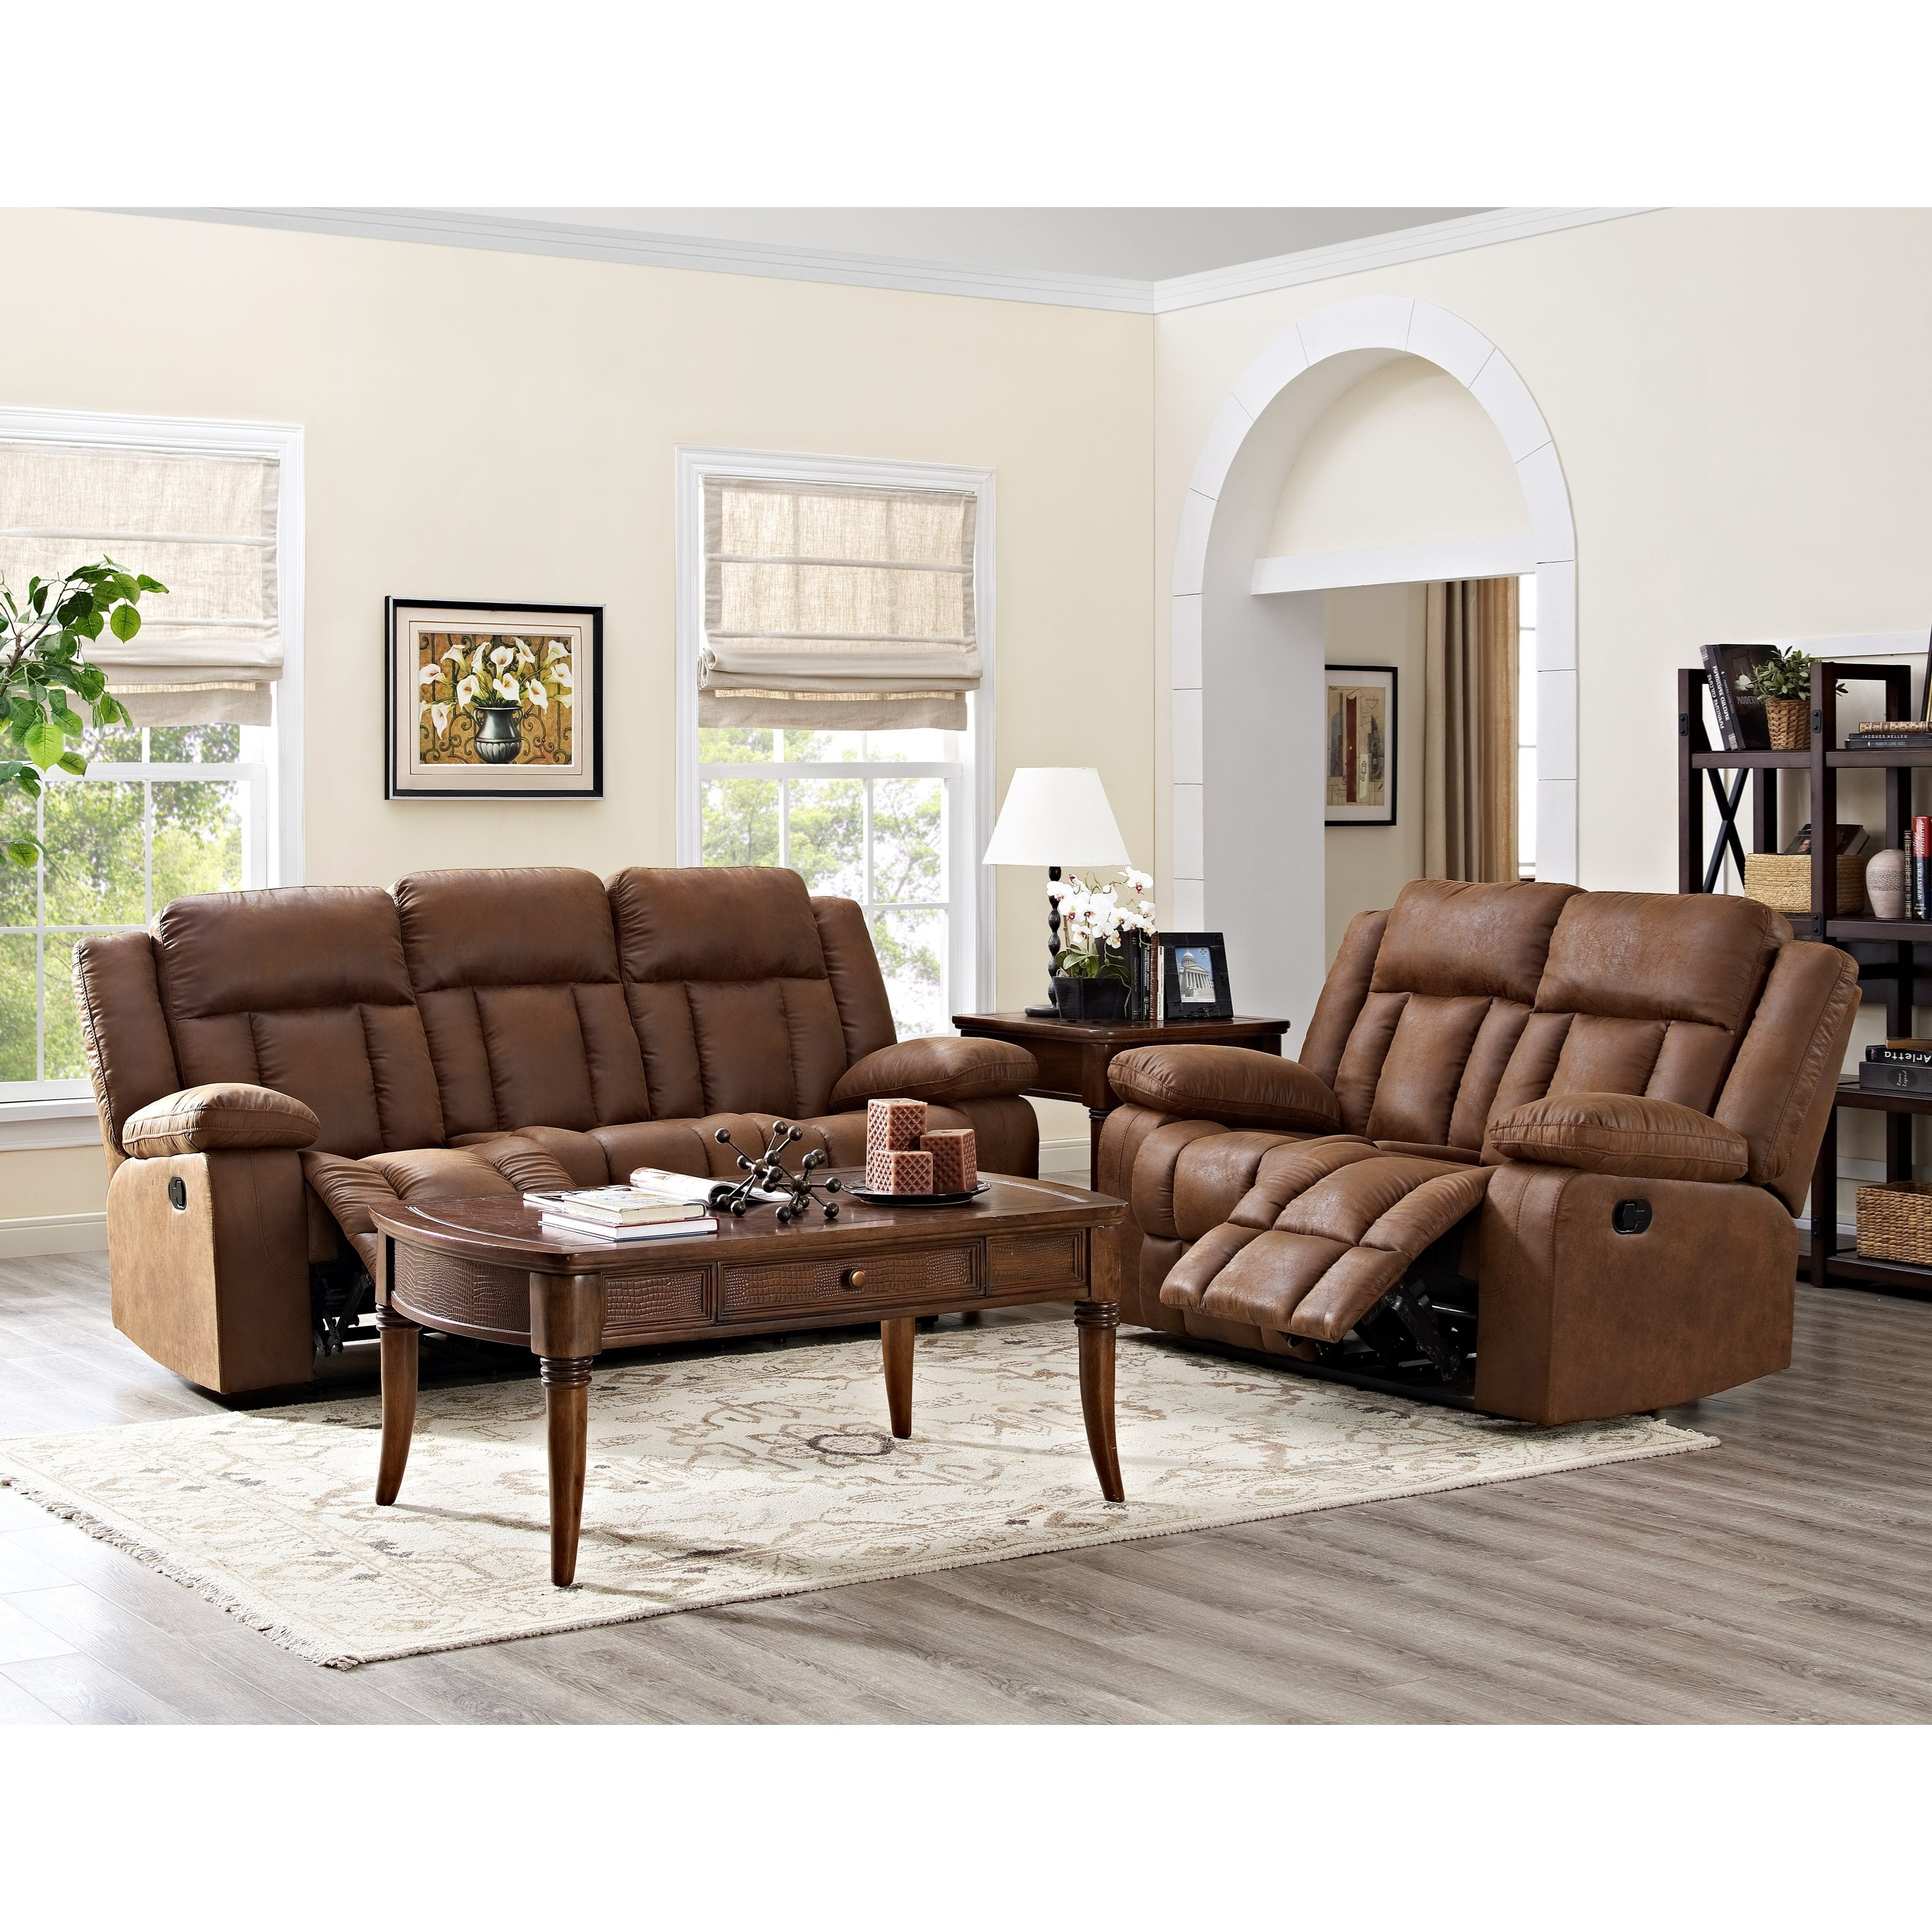 Rutherford 2pc power reclining sofa loveseat set for Living room group sets